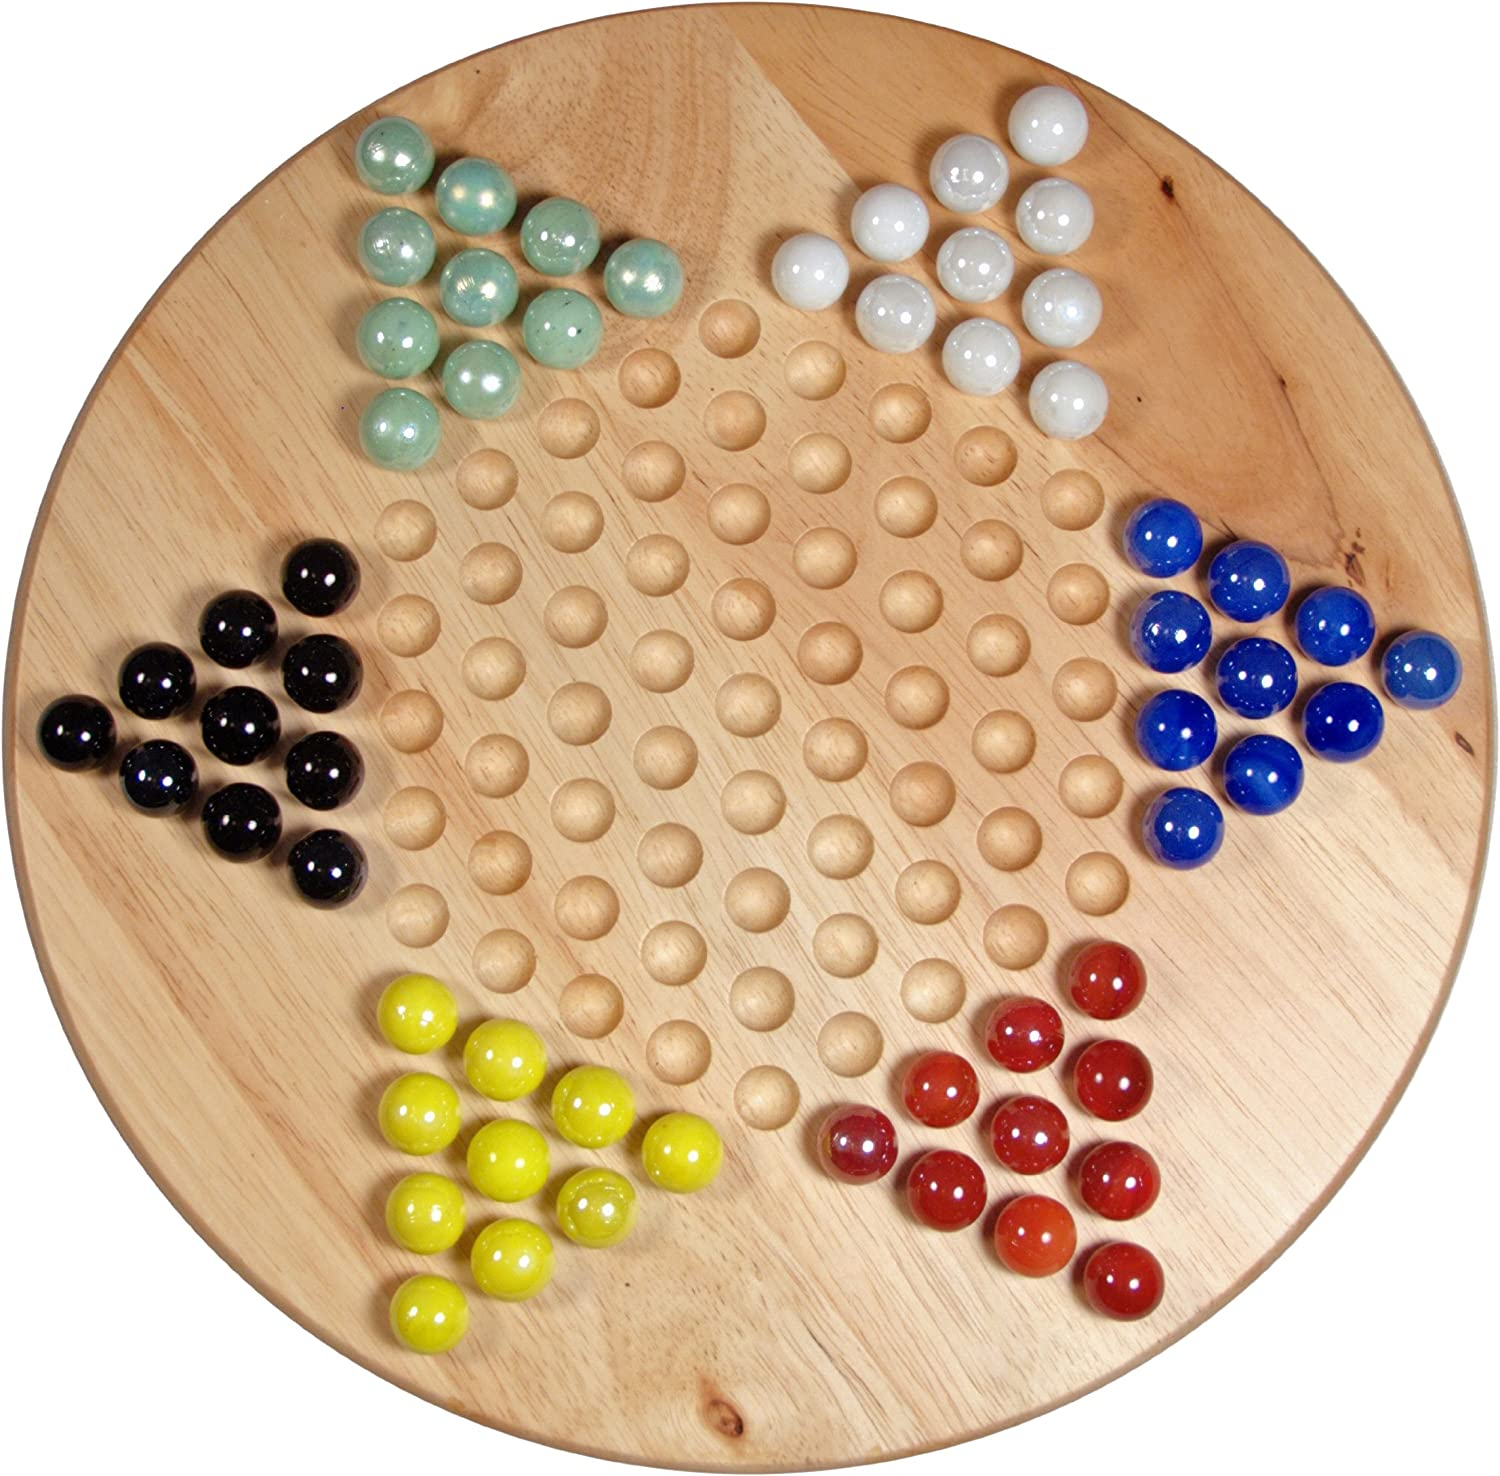 "B0006IH89C Solid Wood 11.5"" Chinese Checkers Set with Glass Marbles 91NbcI2B3E0L"